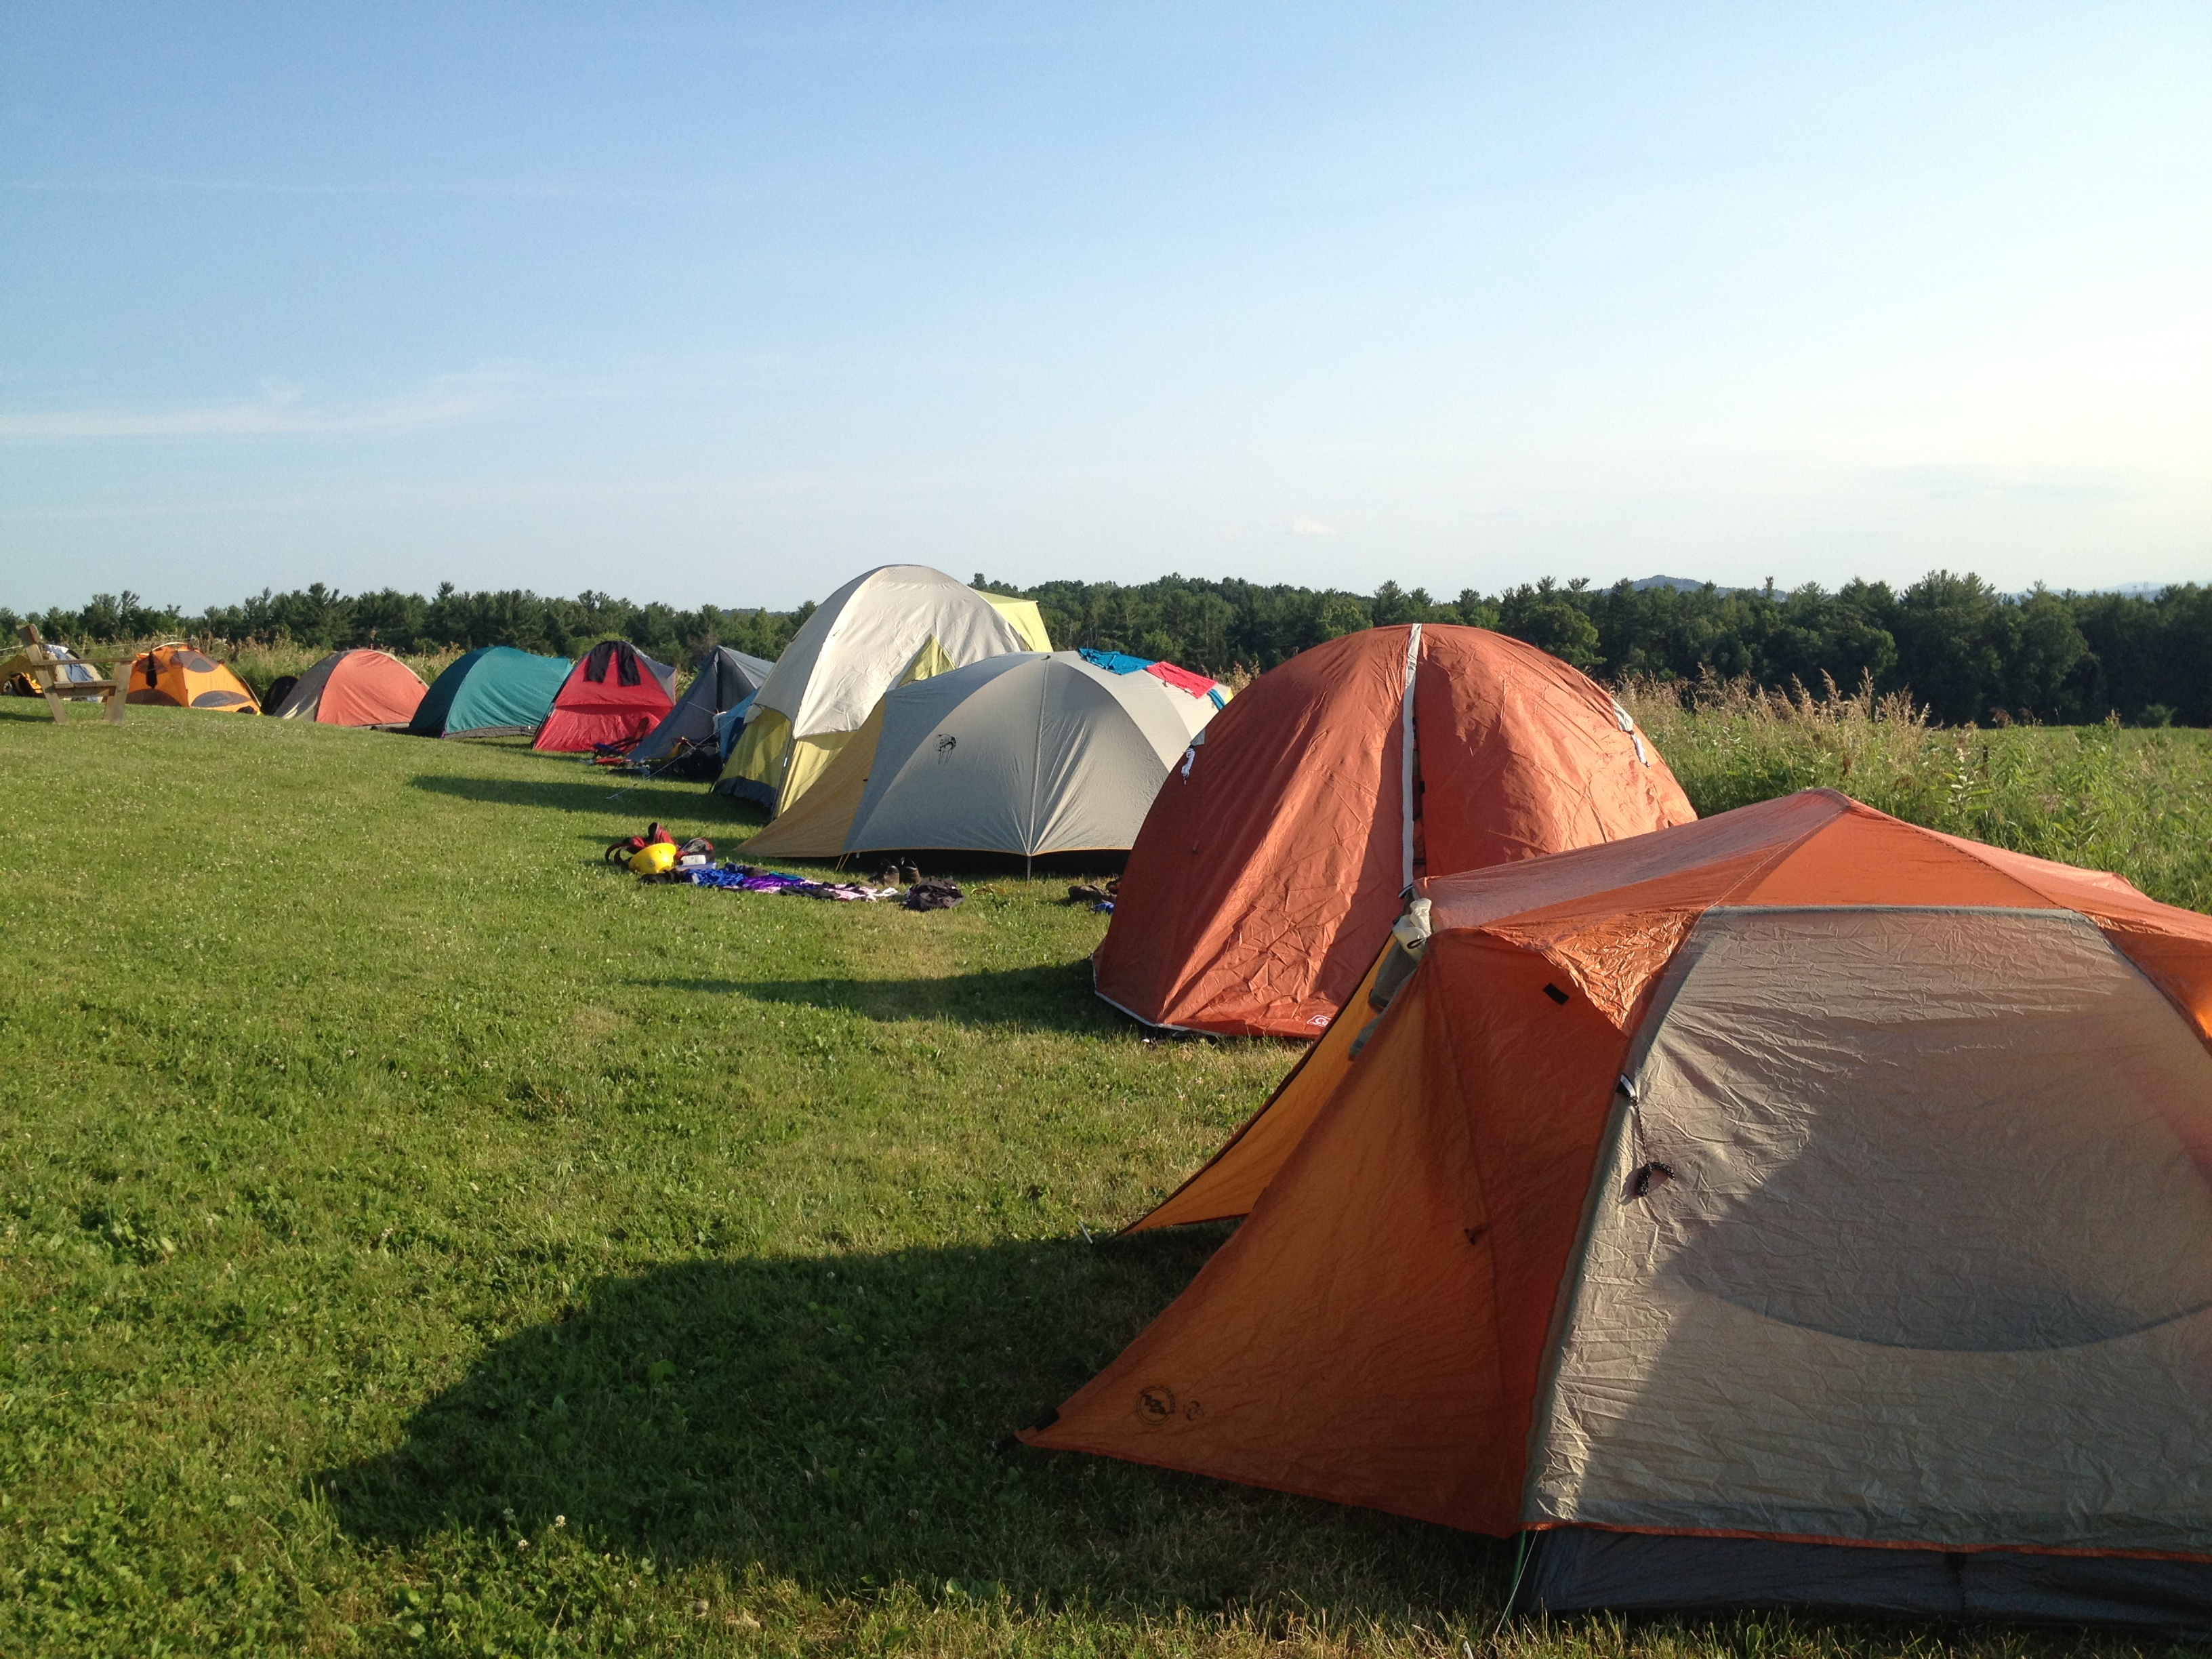 One of many lines of tents & CT Corps meets Hudson Valley | The Student Conservation Association